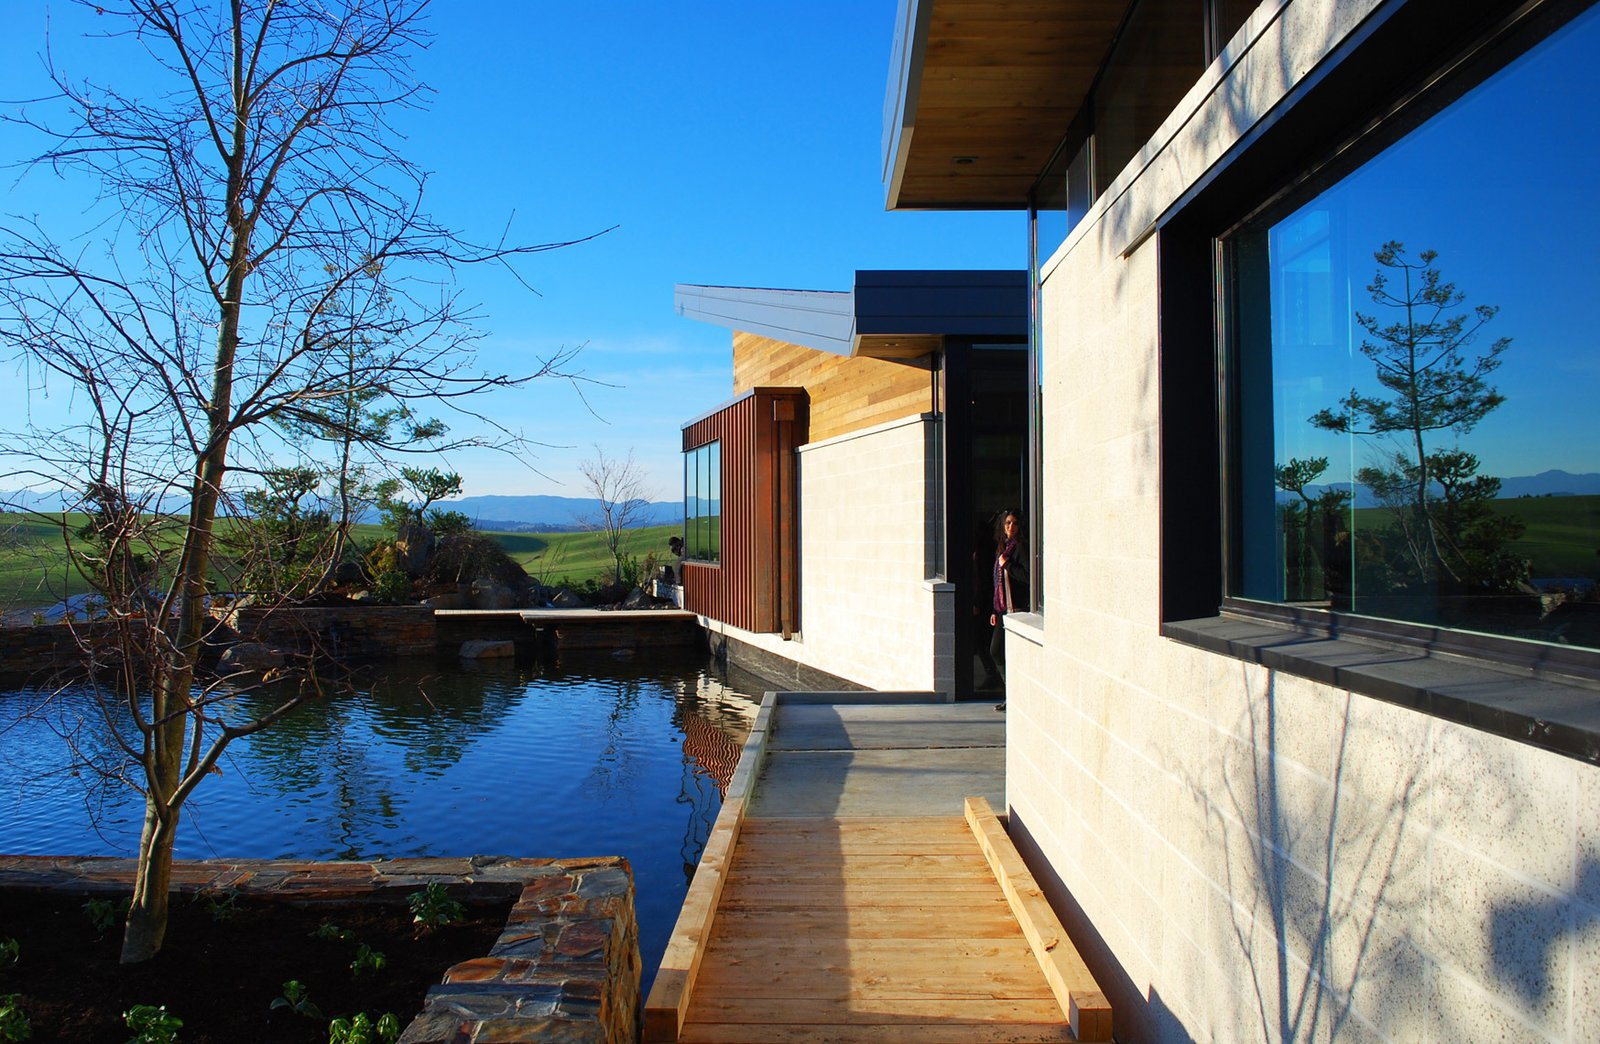 Outdoor, Walkways, Grass, Planters, Field, and Decking The building opens outward to Oregon's quaint wine country.  Best Outdoor Walkways Planters Photos from Saffron Fields Winery